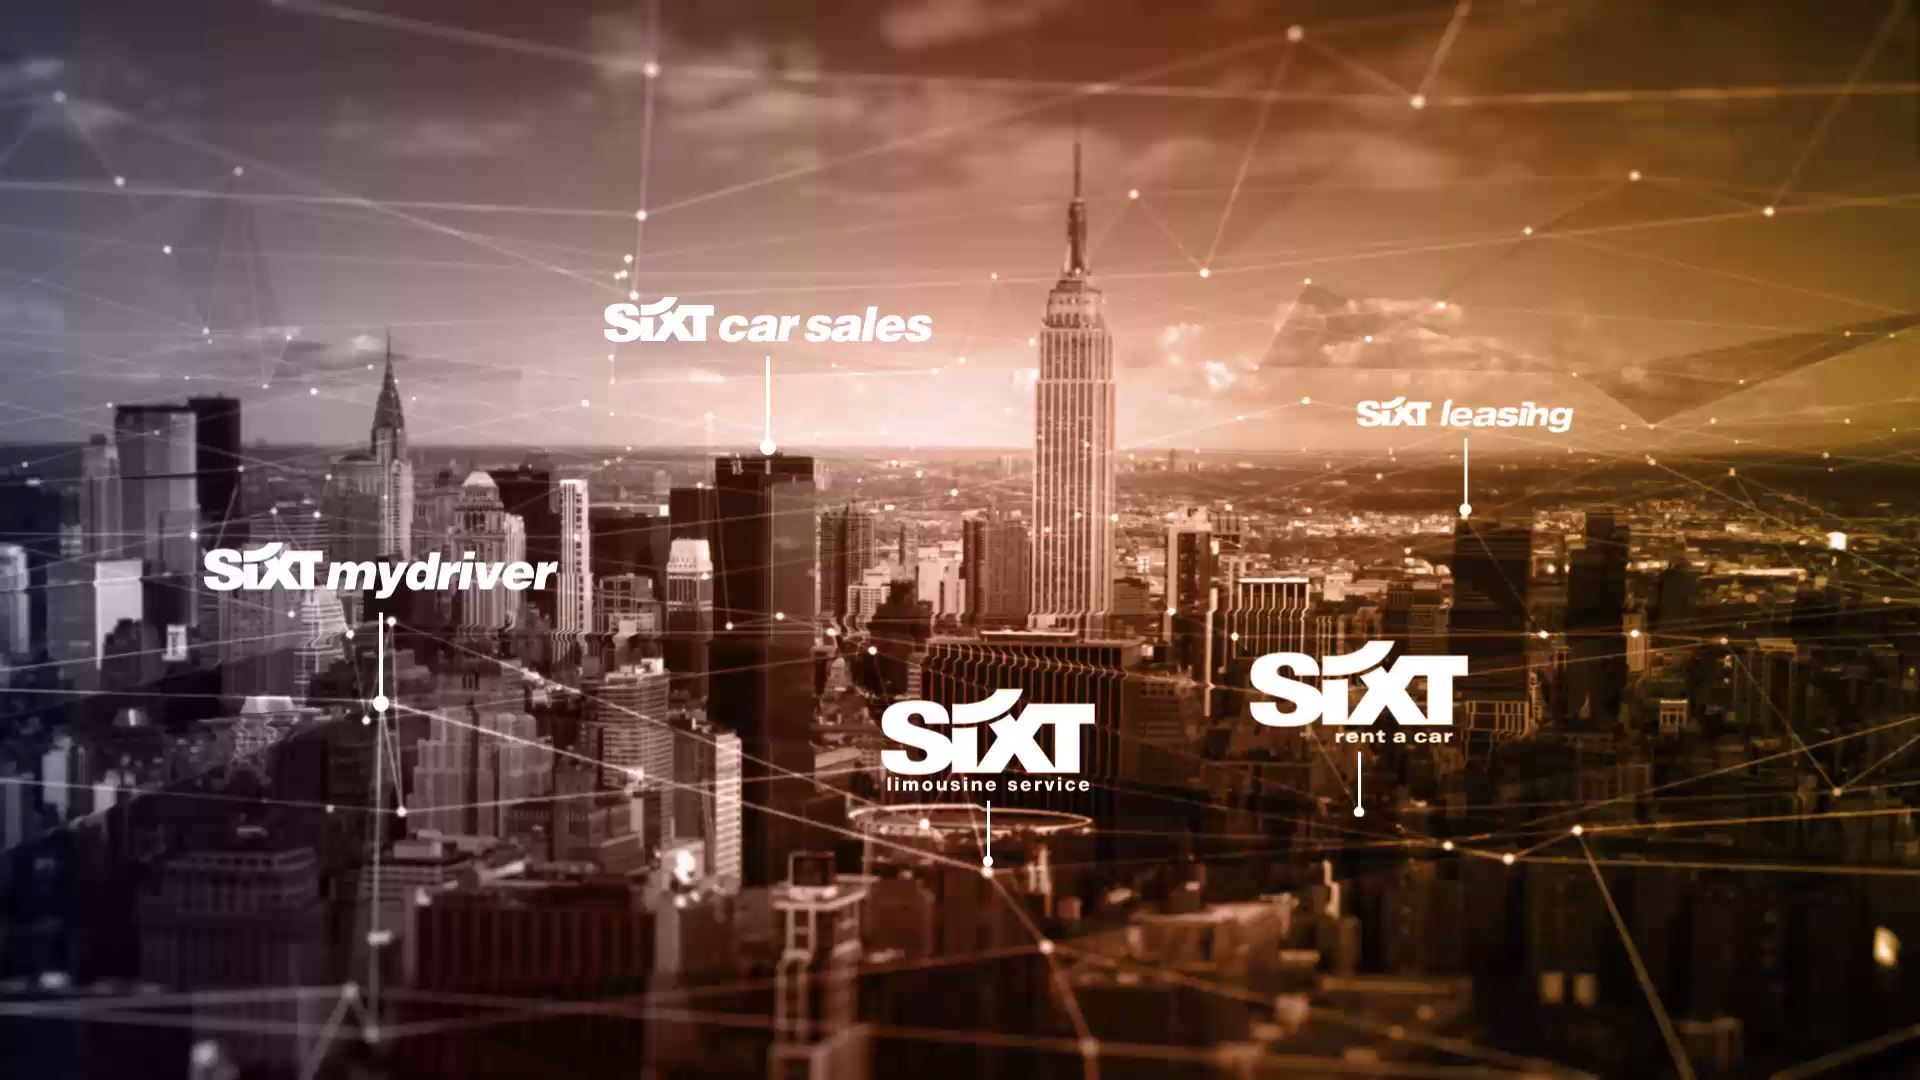 Sixt Se Offers Innovative Mobility Solutions